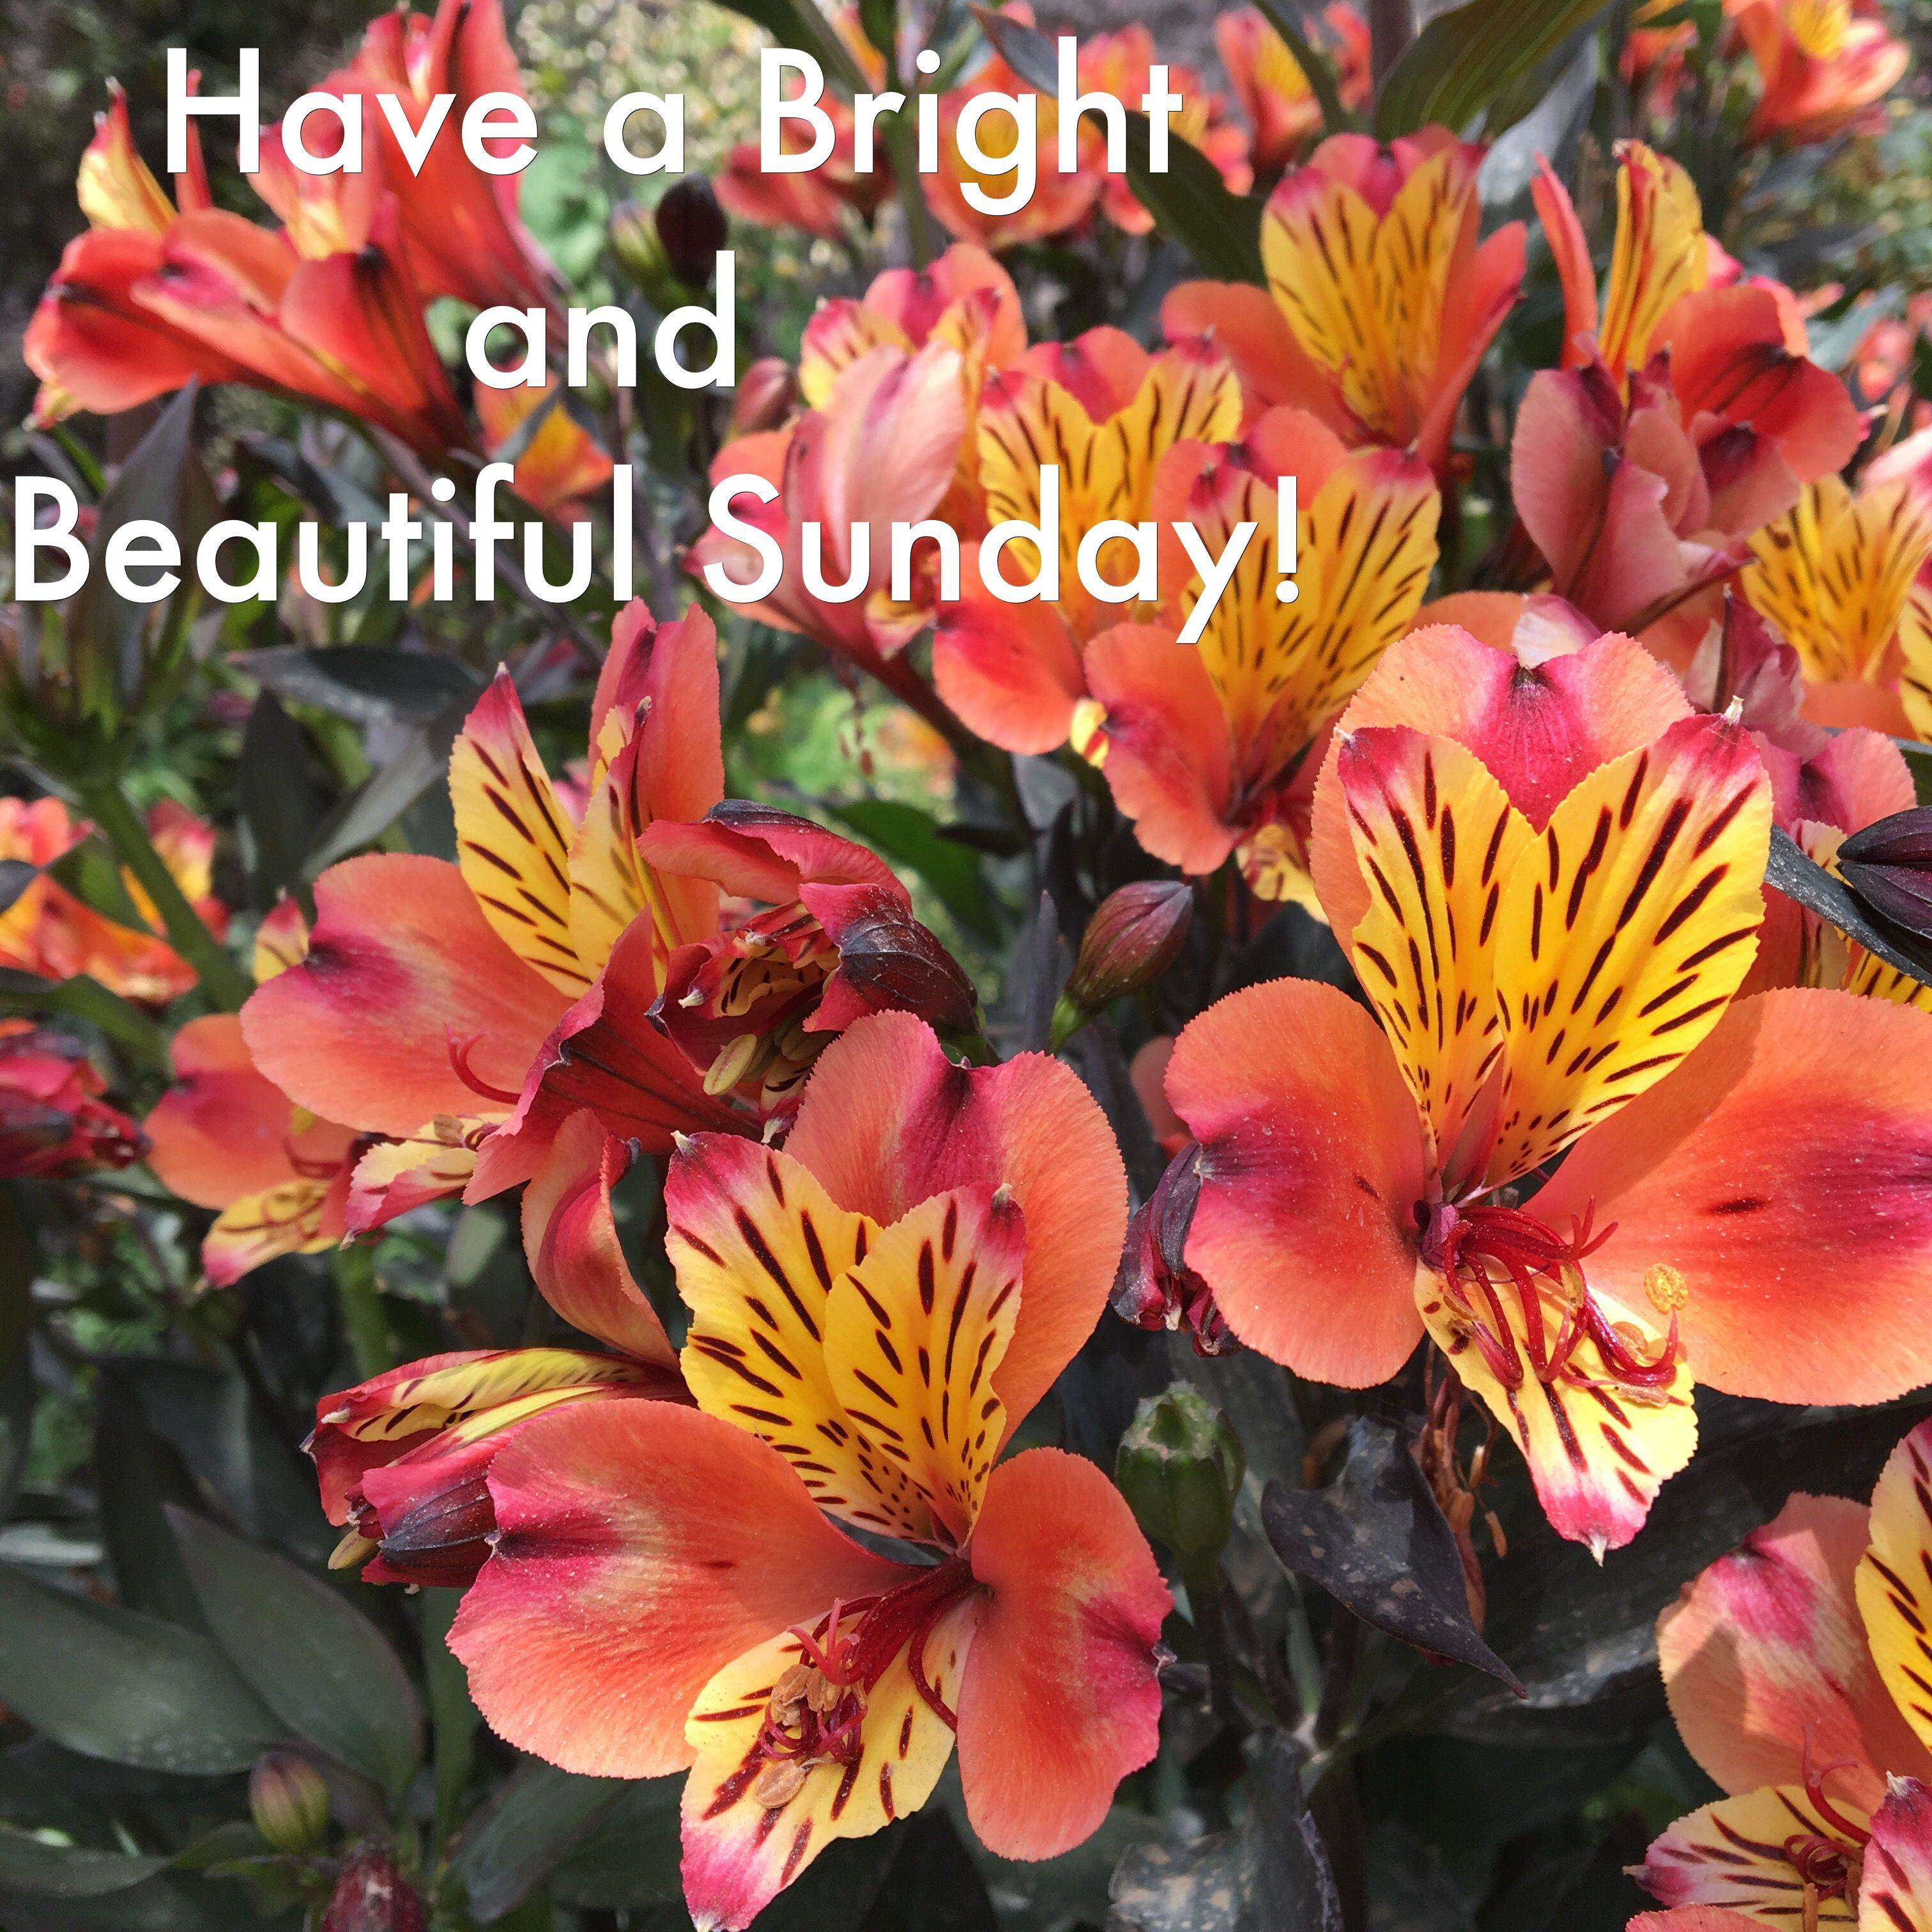 Happy sunday message to you with some pretty flowers happy sunday happy sunday message to you with some pretty flowers happy sunday theweekend flowers delight sweet mightylinksfo